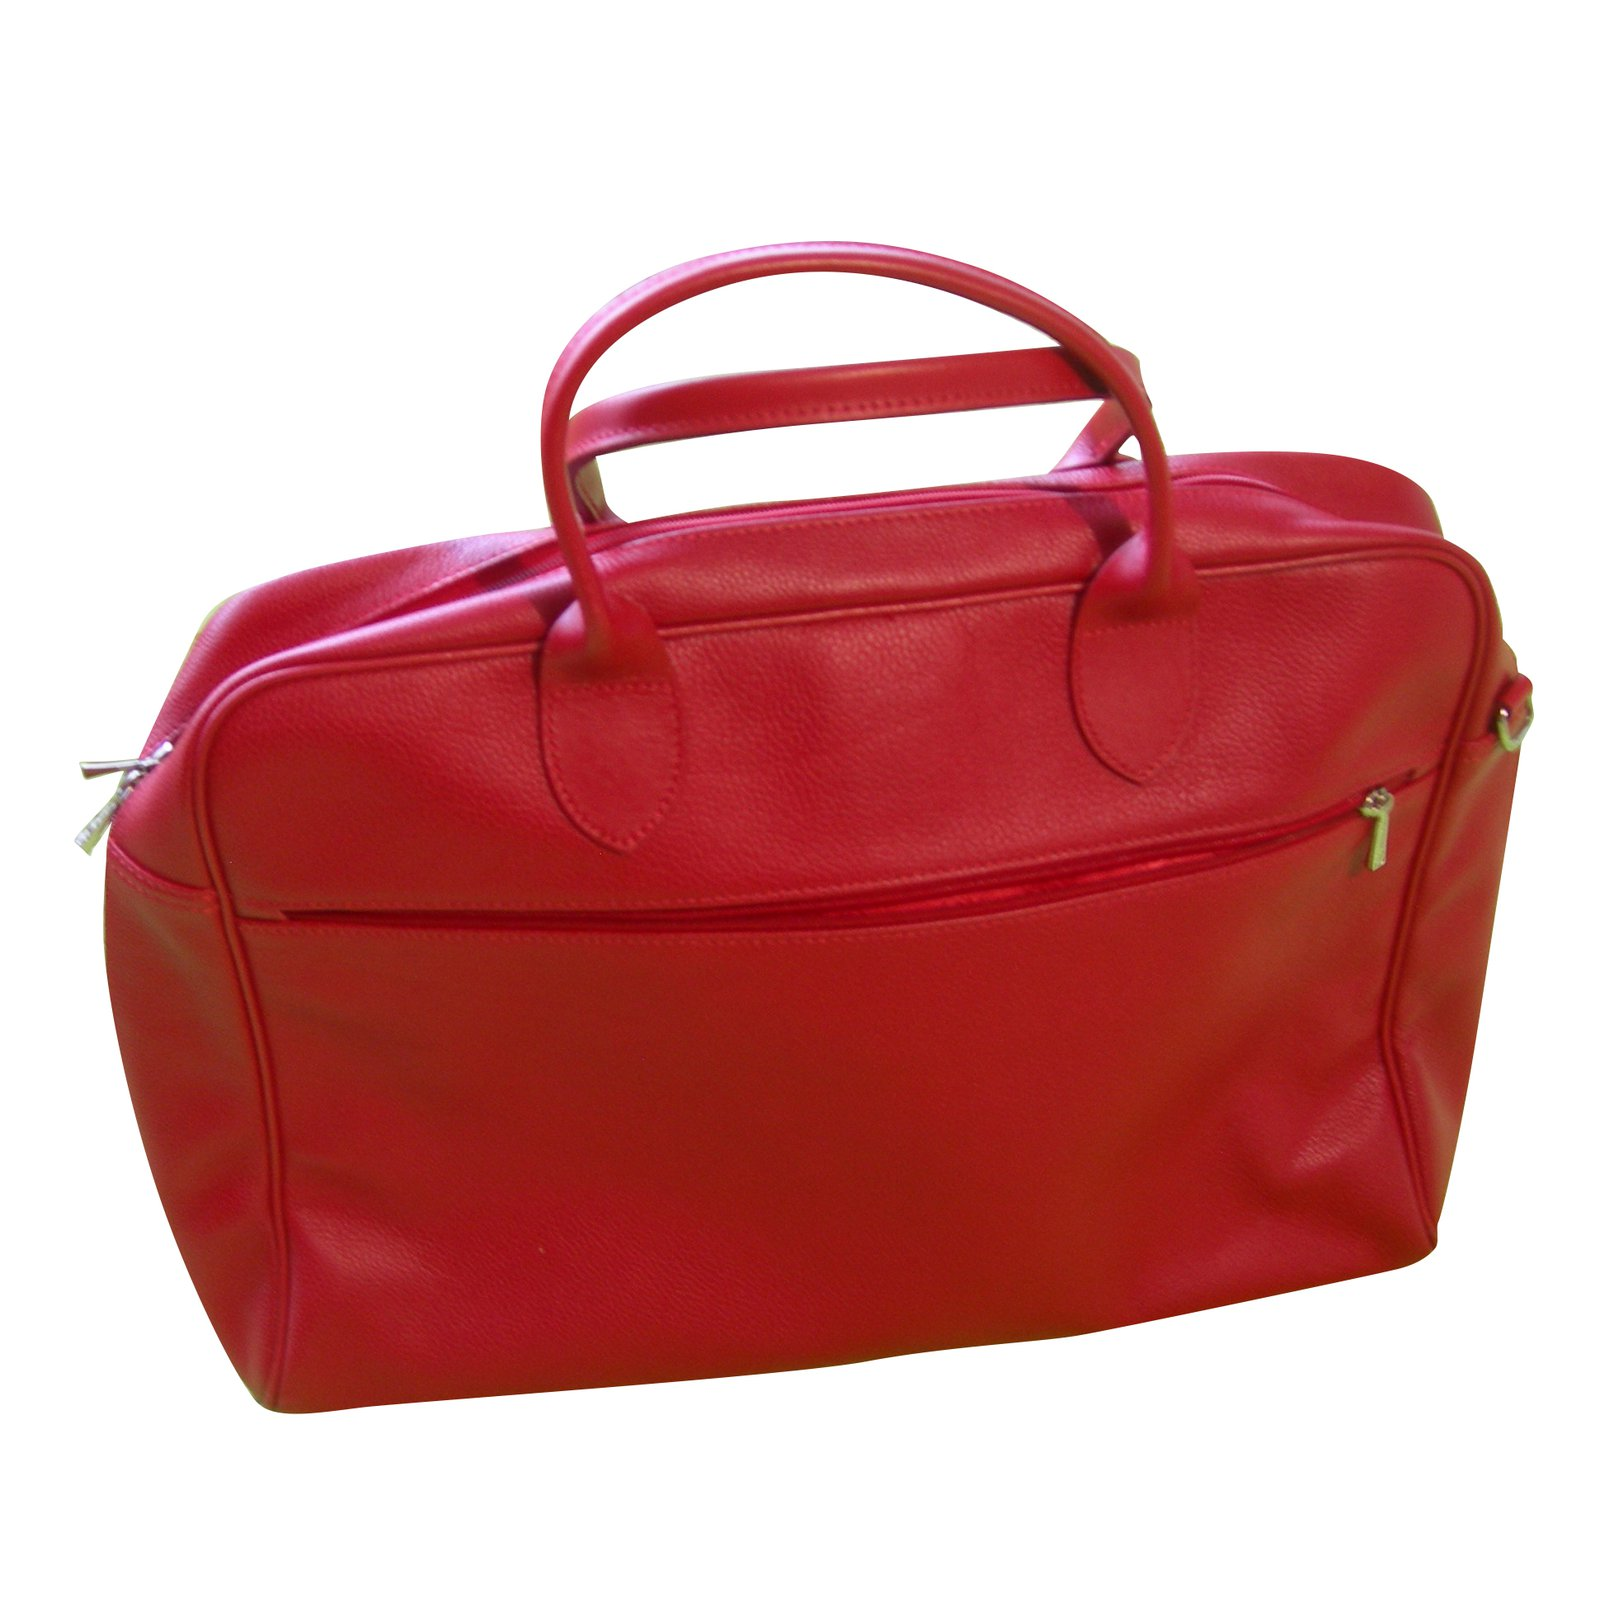 Briefcase Red Le Longchamp Foulonné Leather Borsette Ref aw5qfIfx